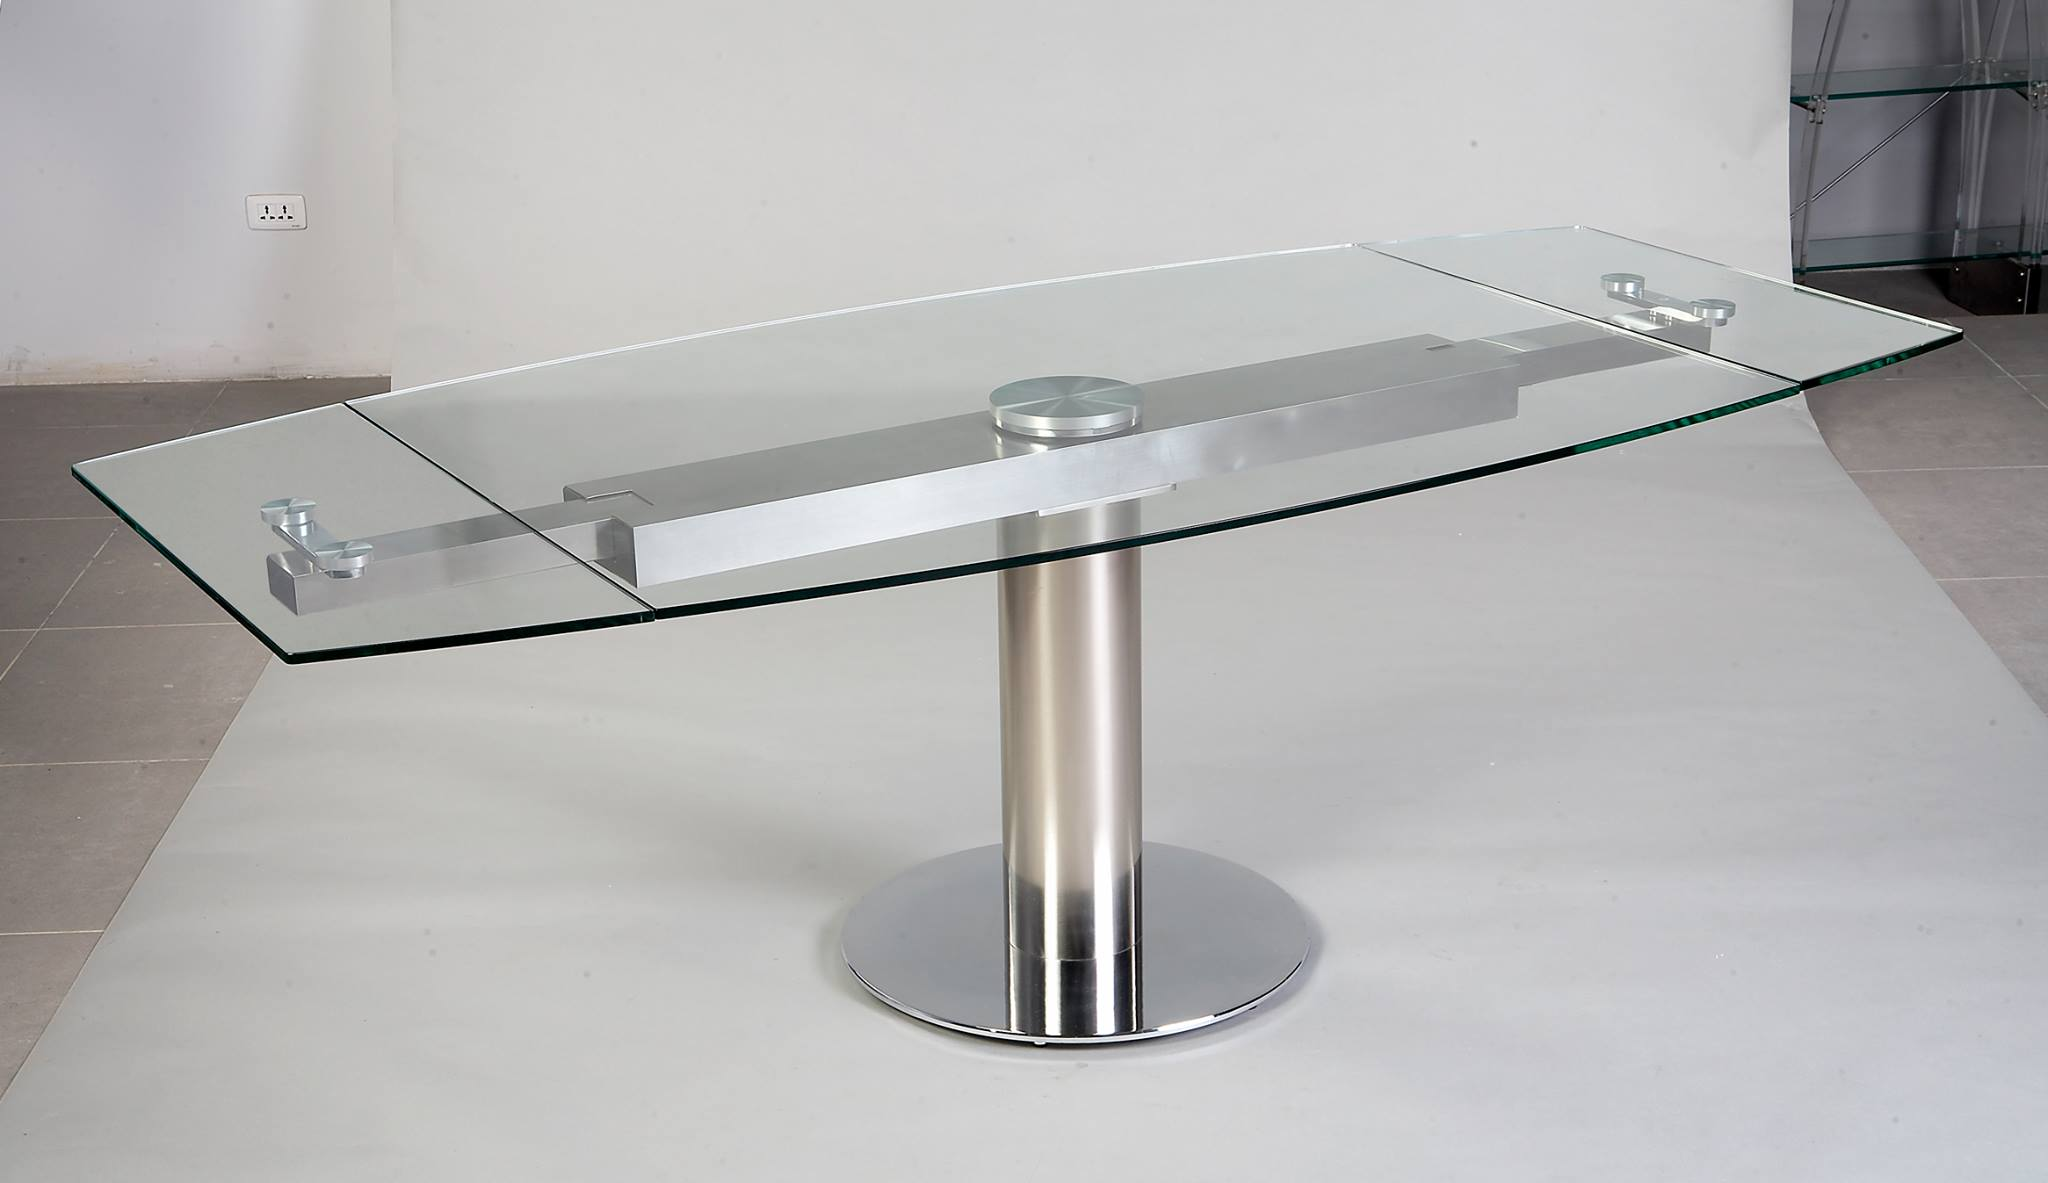 Table verre pied central allonge - Table de salle a manger avec rallonge ...